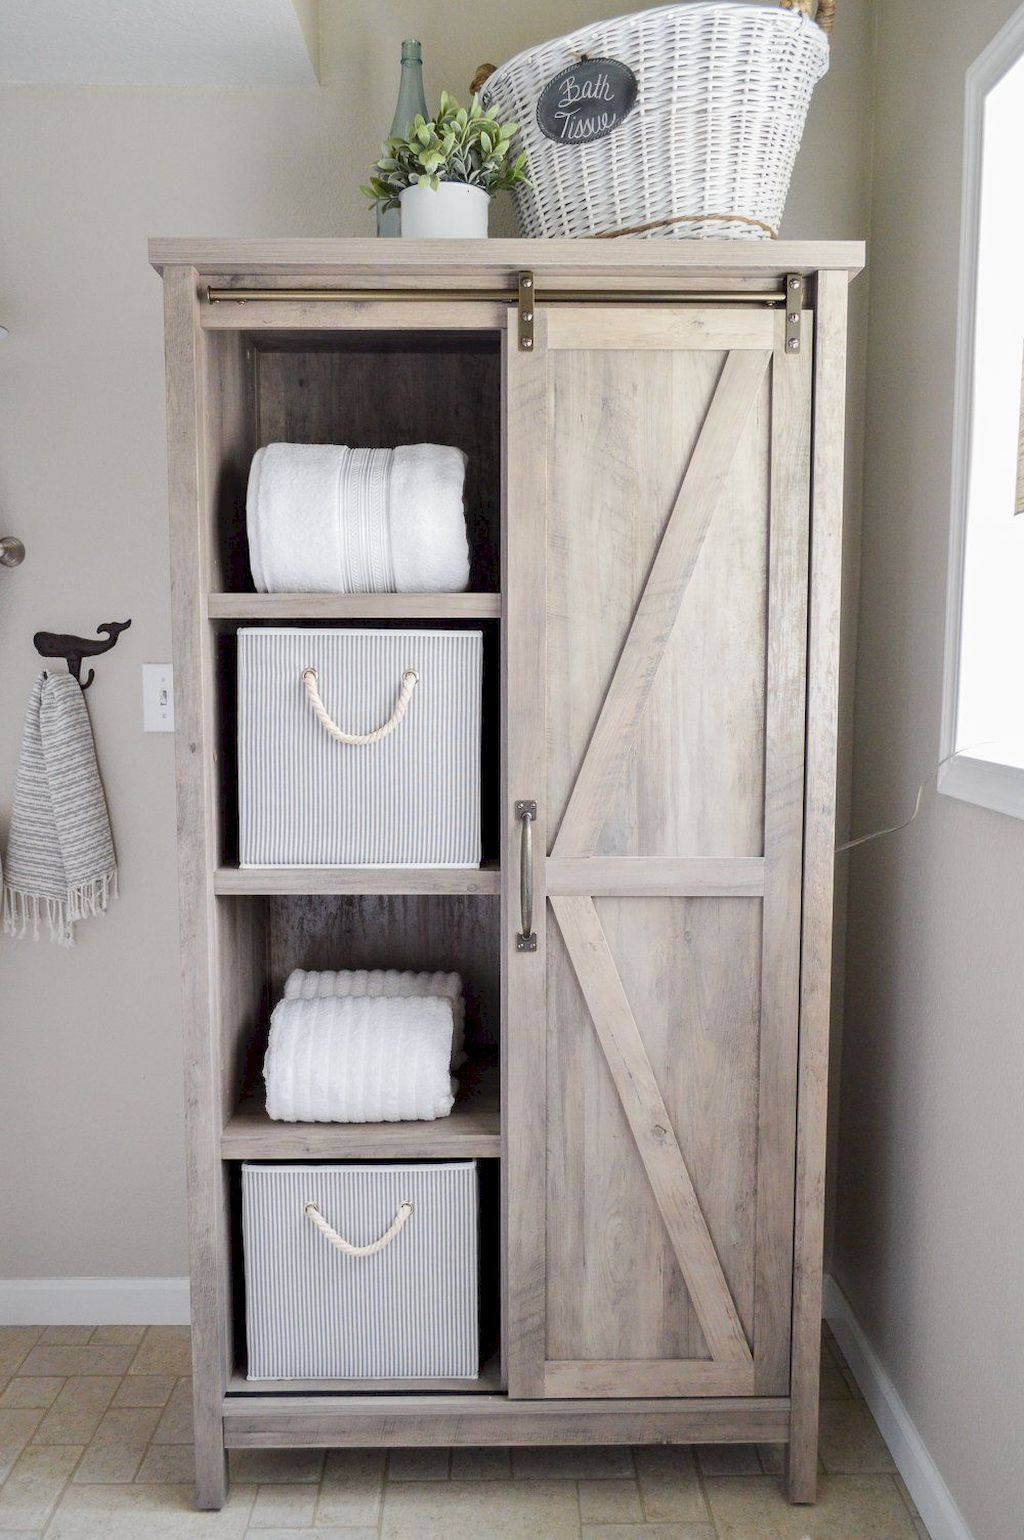 Awesome Free Standing Bathroom Cabinets Ideas Https Carribeanpic Com Free Standing Bat Farmhouse Storage Cabinets Rustic Storage Cabinets Farmhouse Bookcases